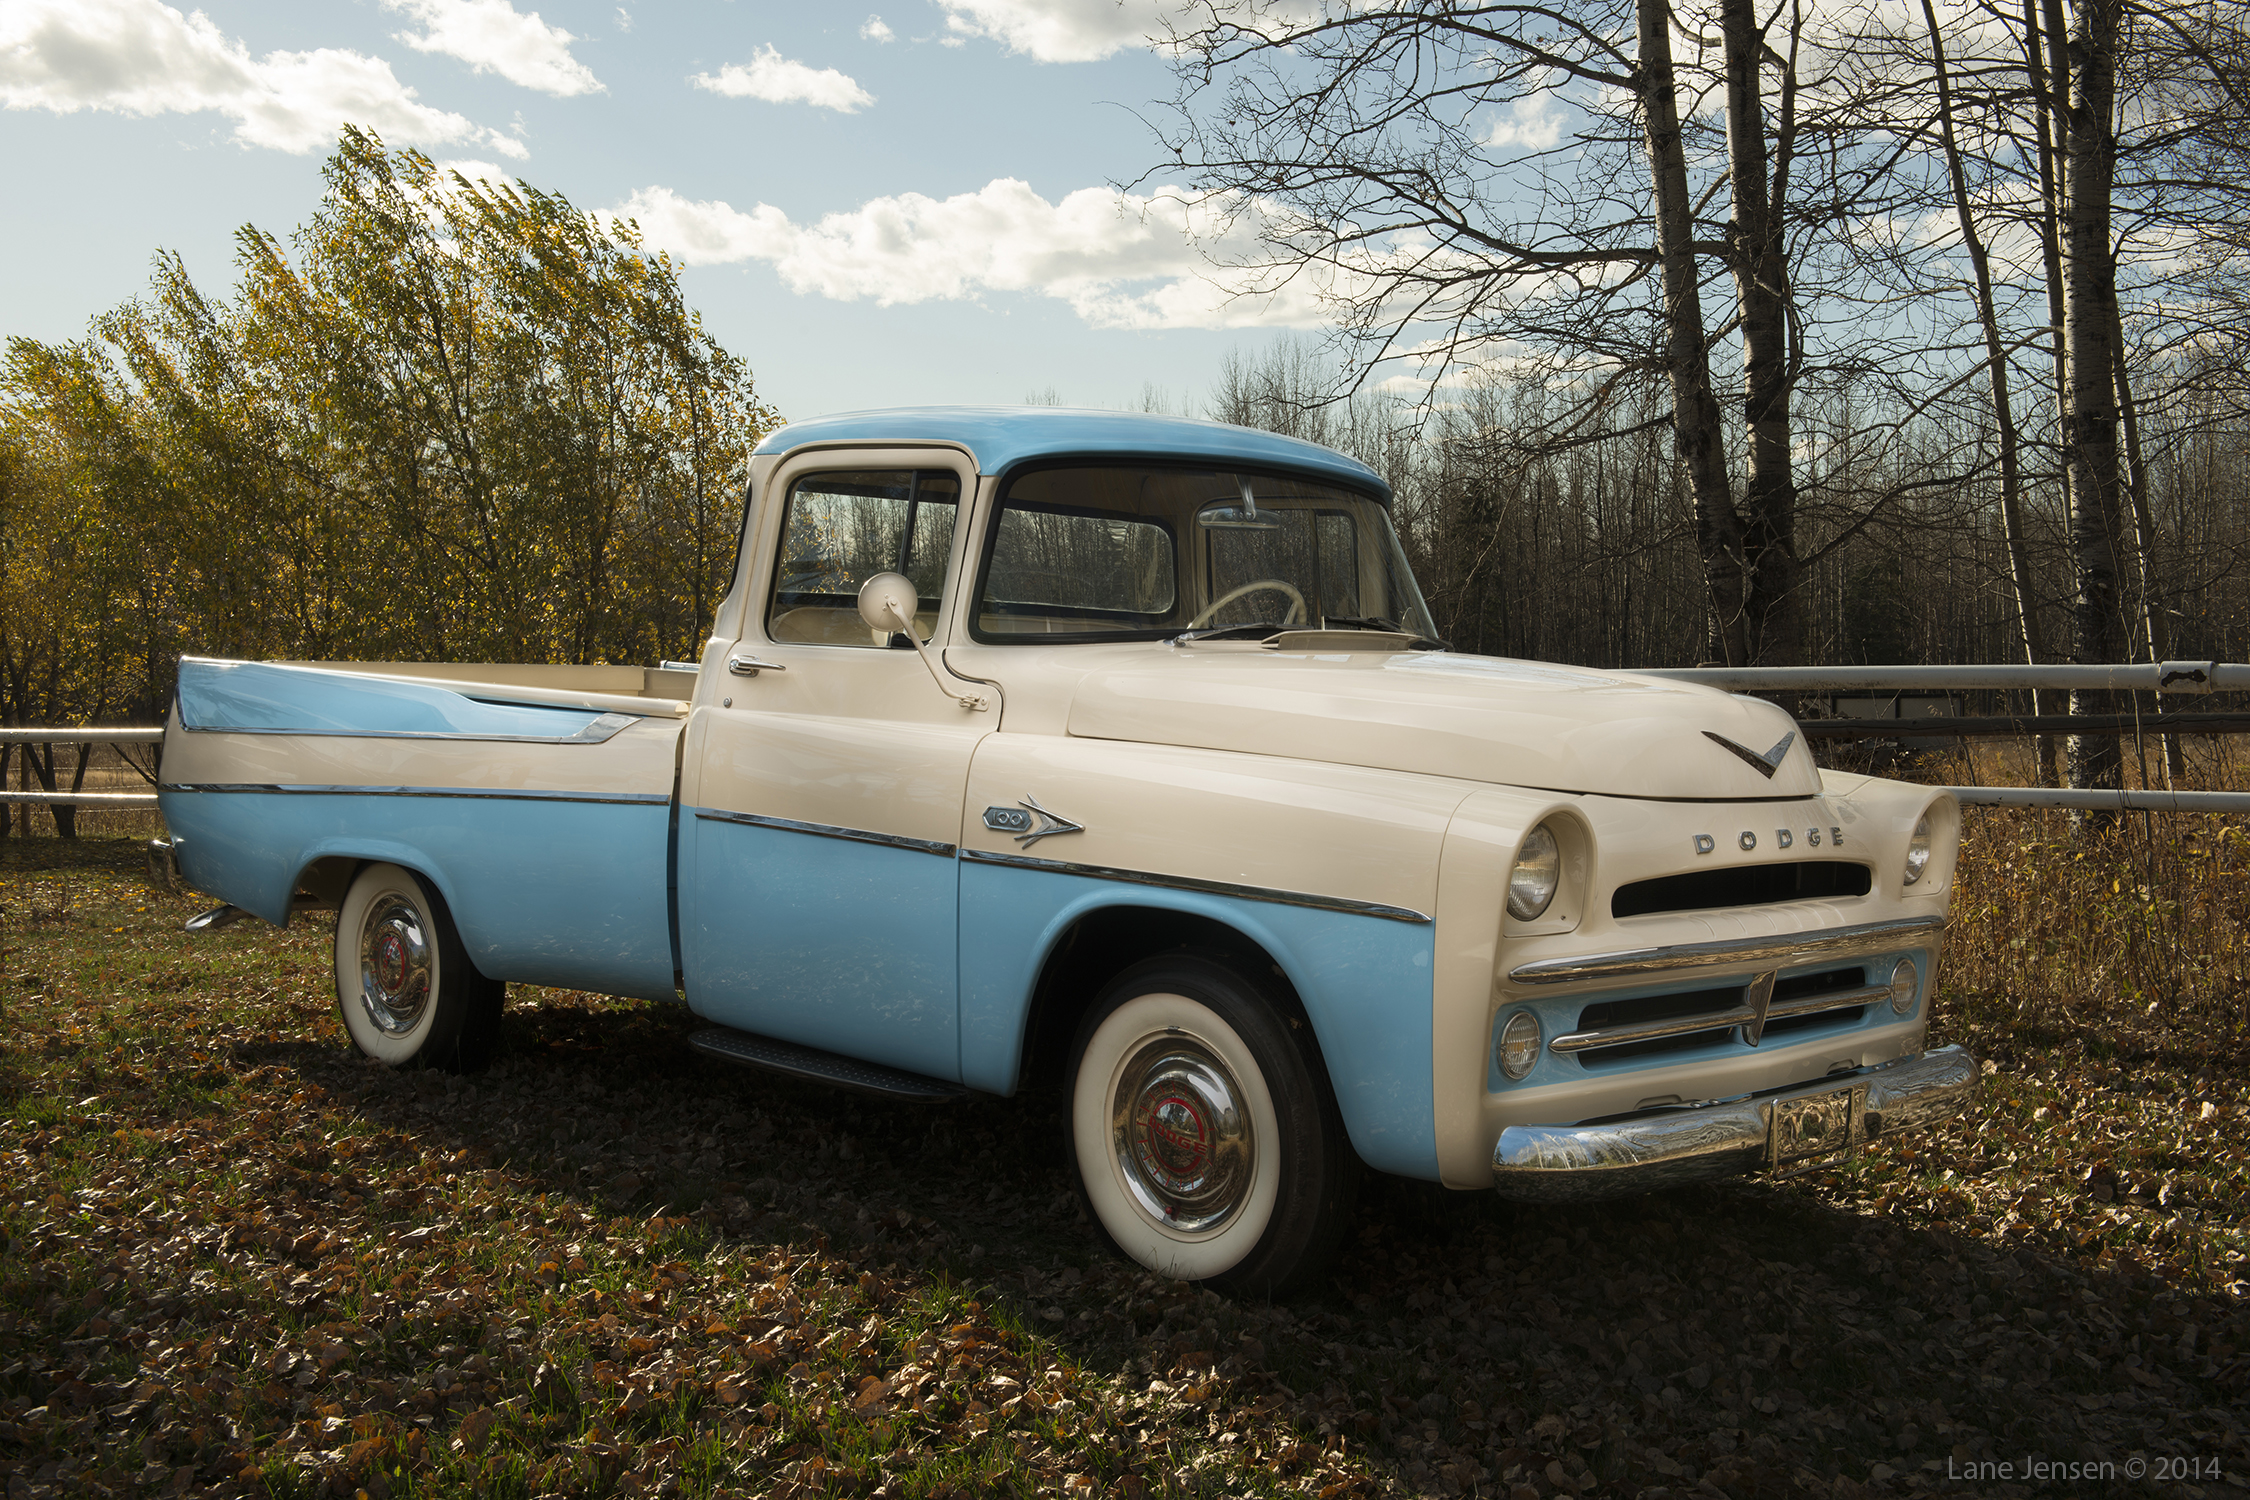 White and Blue Dodge Truck done 16 x 24 website.jpg